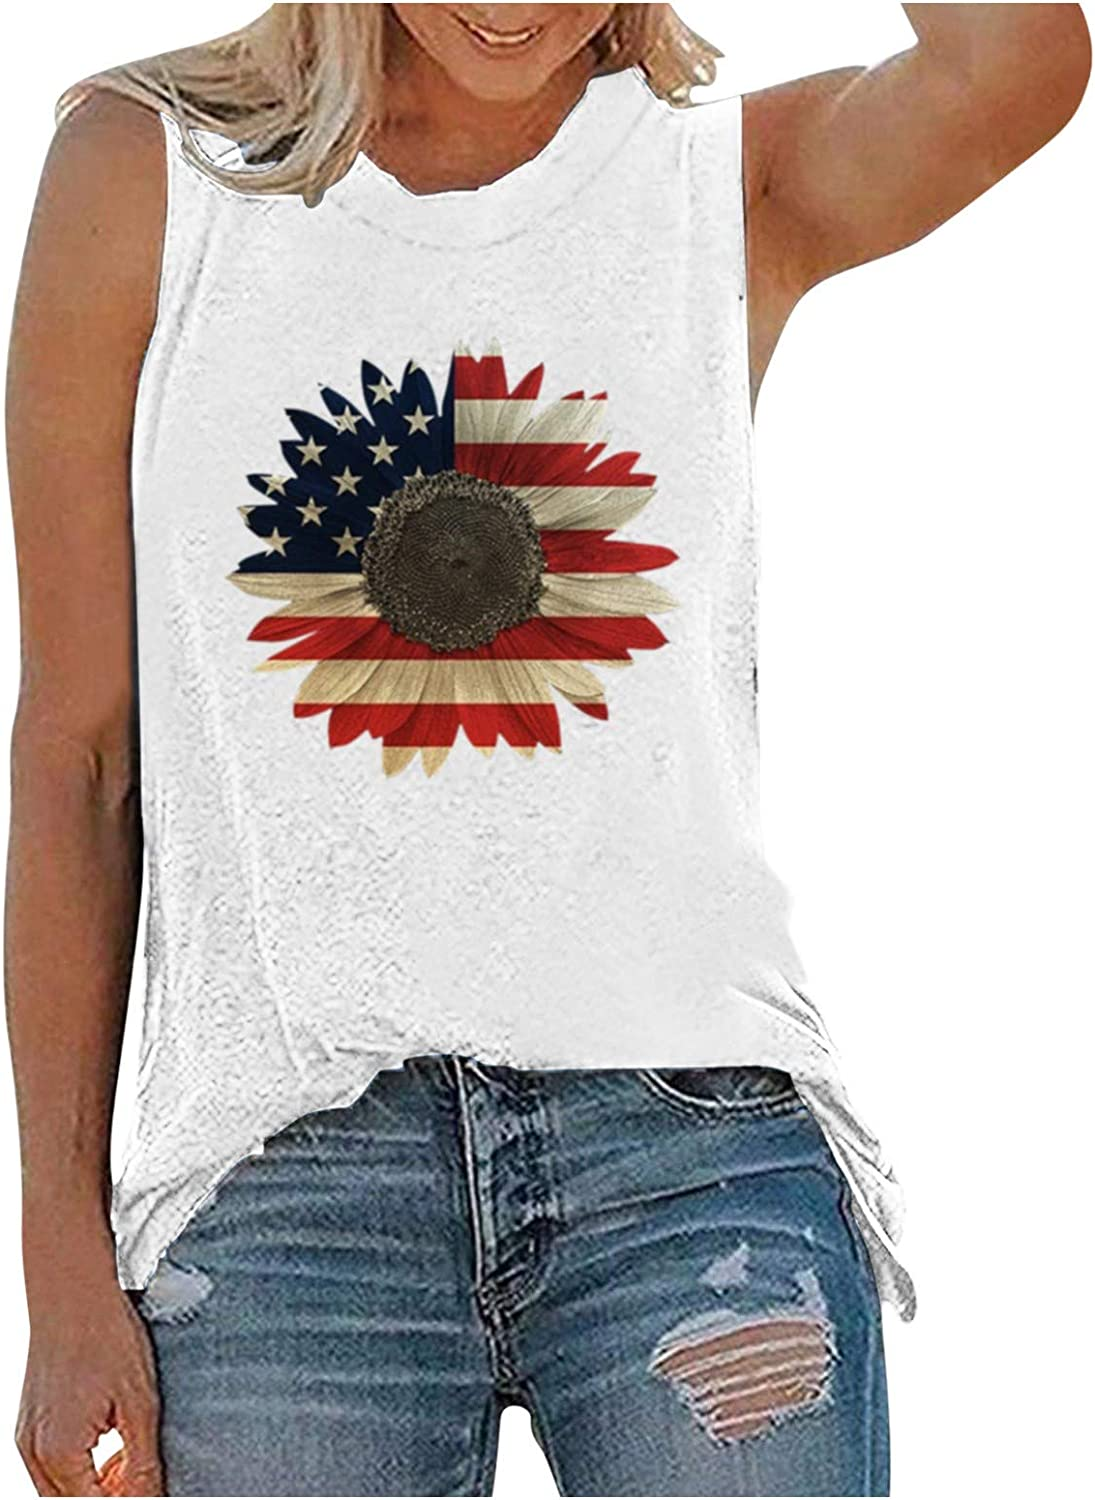 Women Tank Tops, Fankle Sunflower Printed Vest Tshirt Sleeveless Workout Blouse Casual Summer Tank Top Tunic Tee